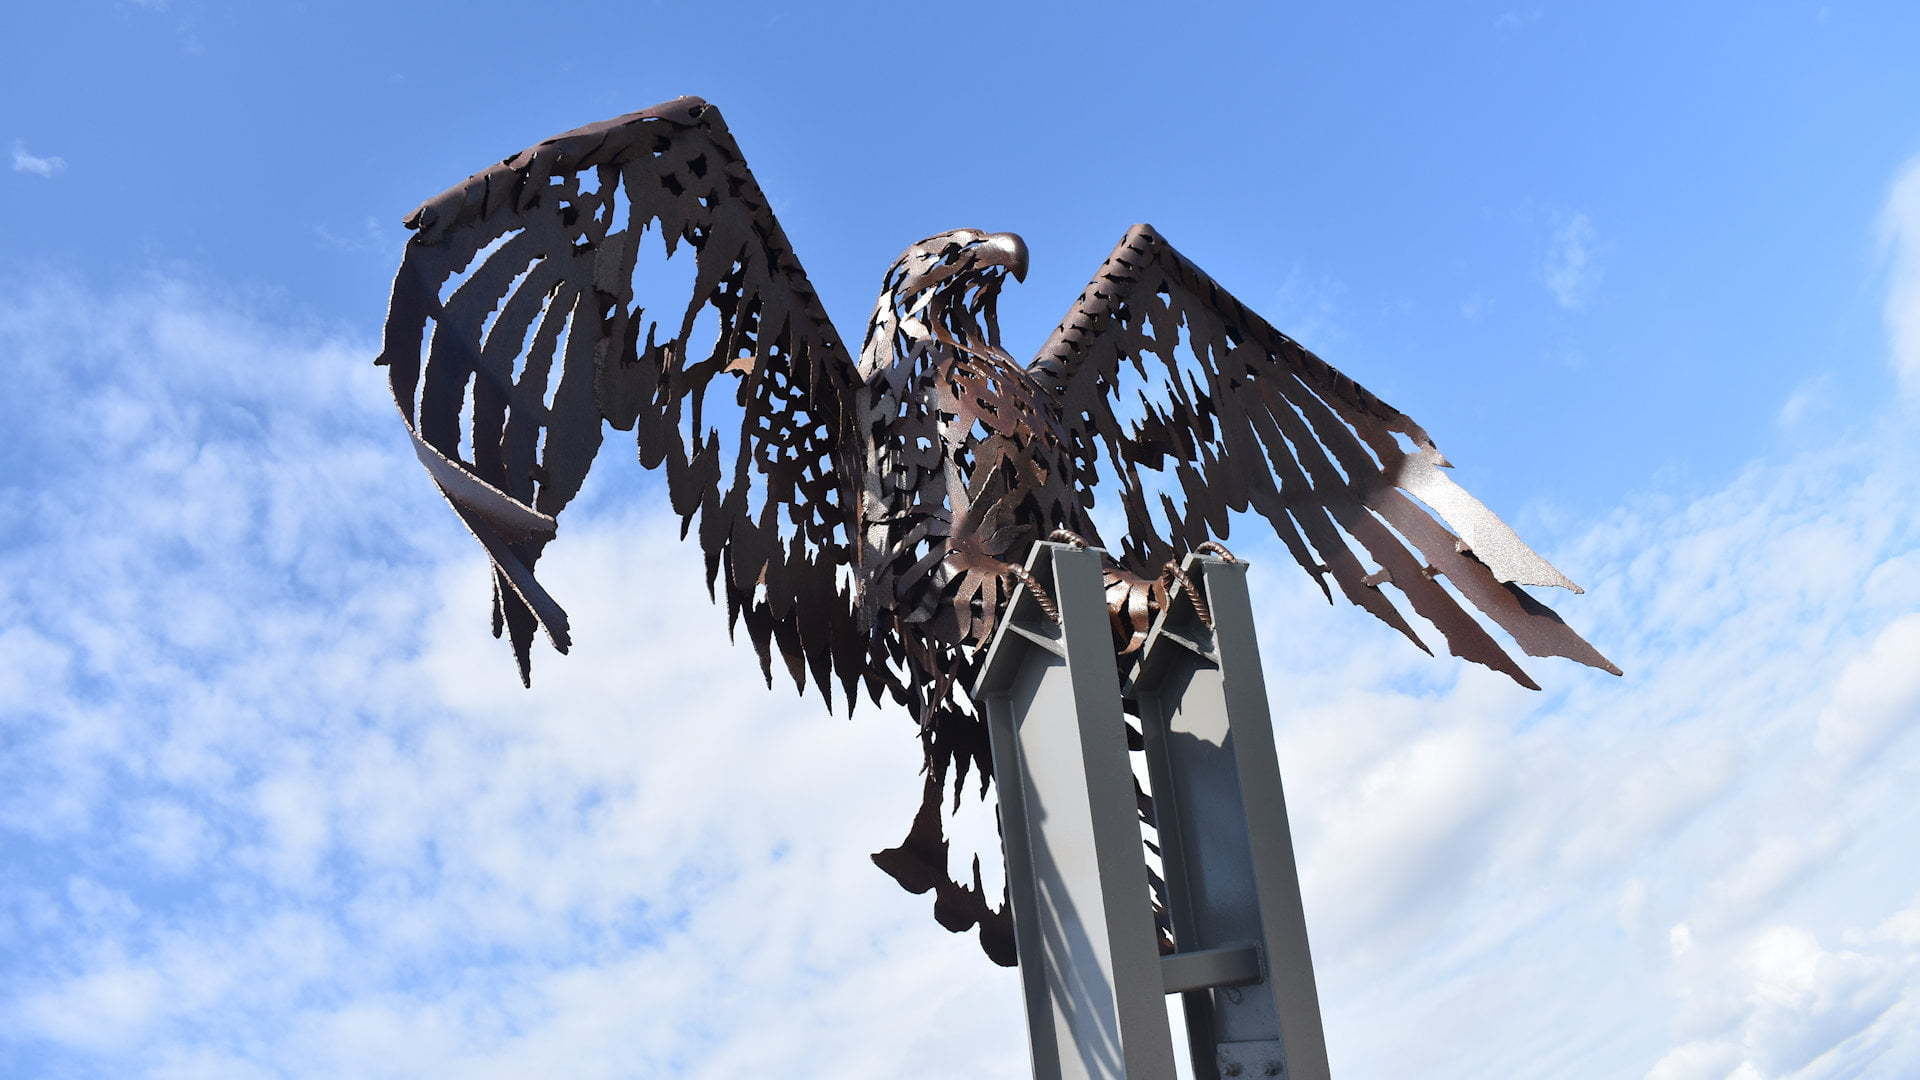 The Big Eagle known by locals as the Rusty Chook, the iron steel eagle sits on the hill of Kirra Point at Coolangatta Gold Coast